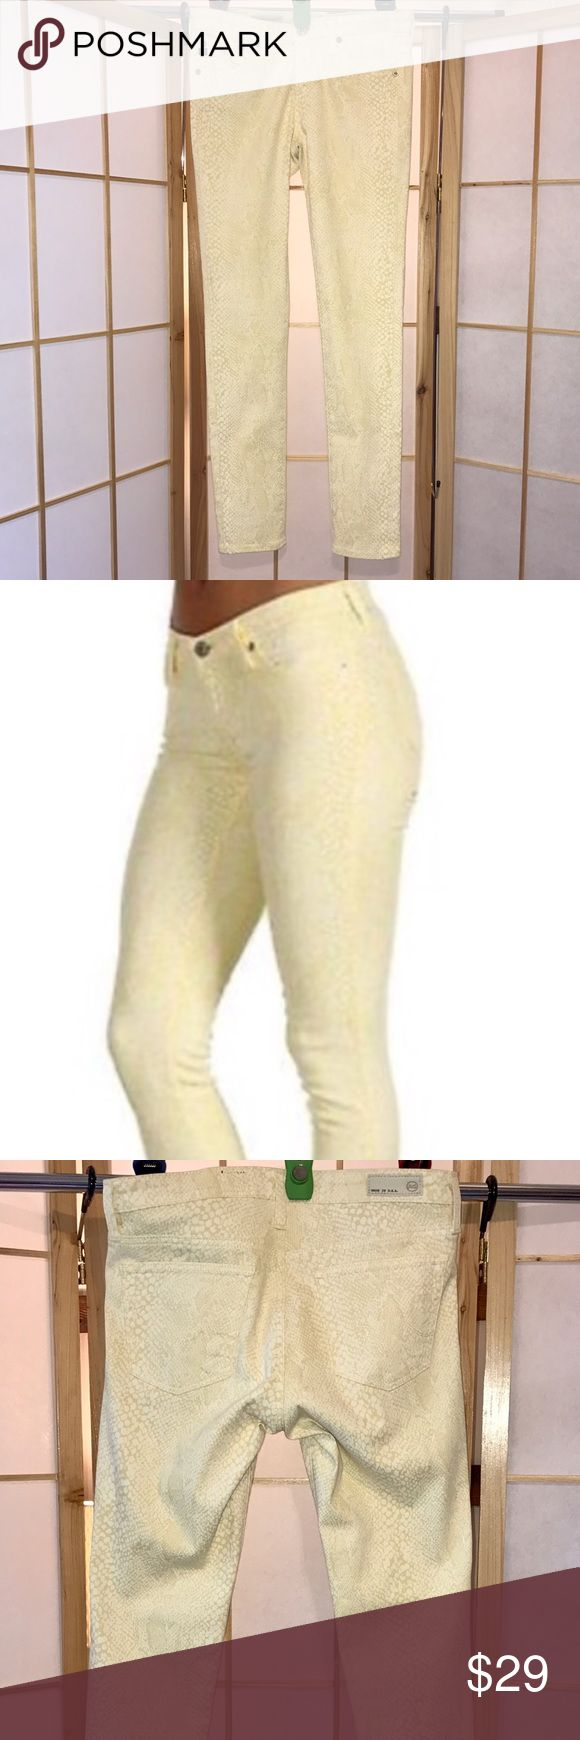 Ag Adriano Goldschmied Soft Yellow Skinny NWOT! Ag Adriano Goldschmied Soft Yellow Skinny NWOT! Hit at Ankle. Faint snakeskin print for a little edge. Perfect Condition! I ❤️ These!! Ag Adriano Goldschmied Jeans Skinny